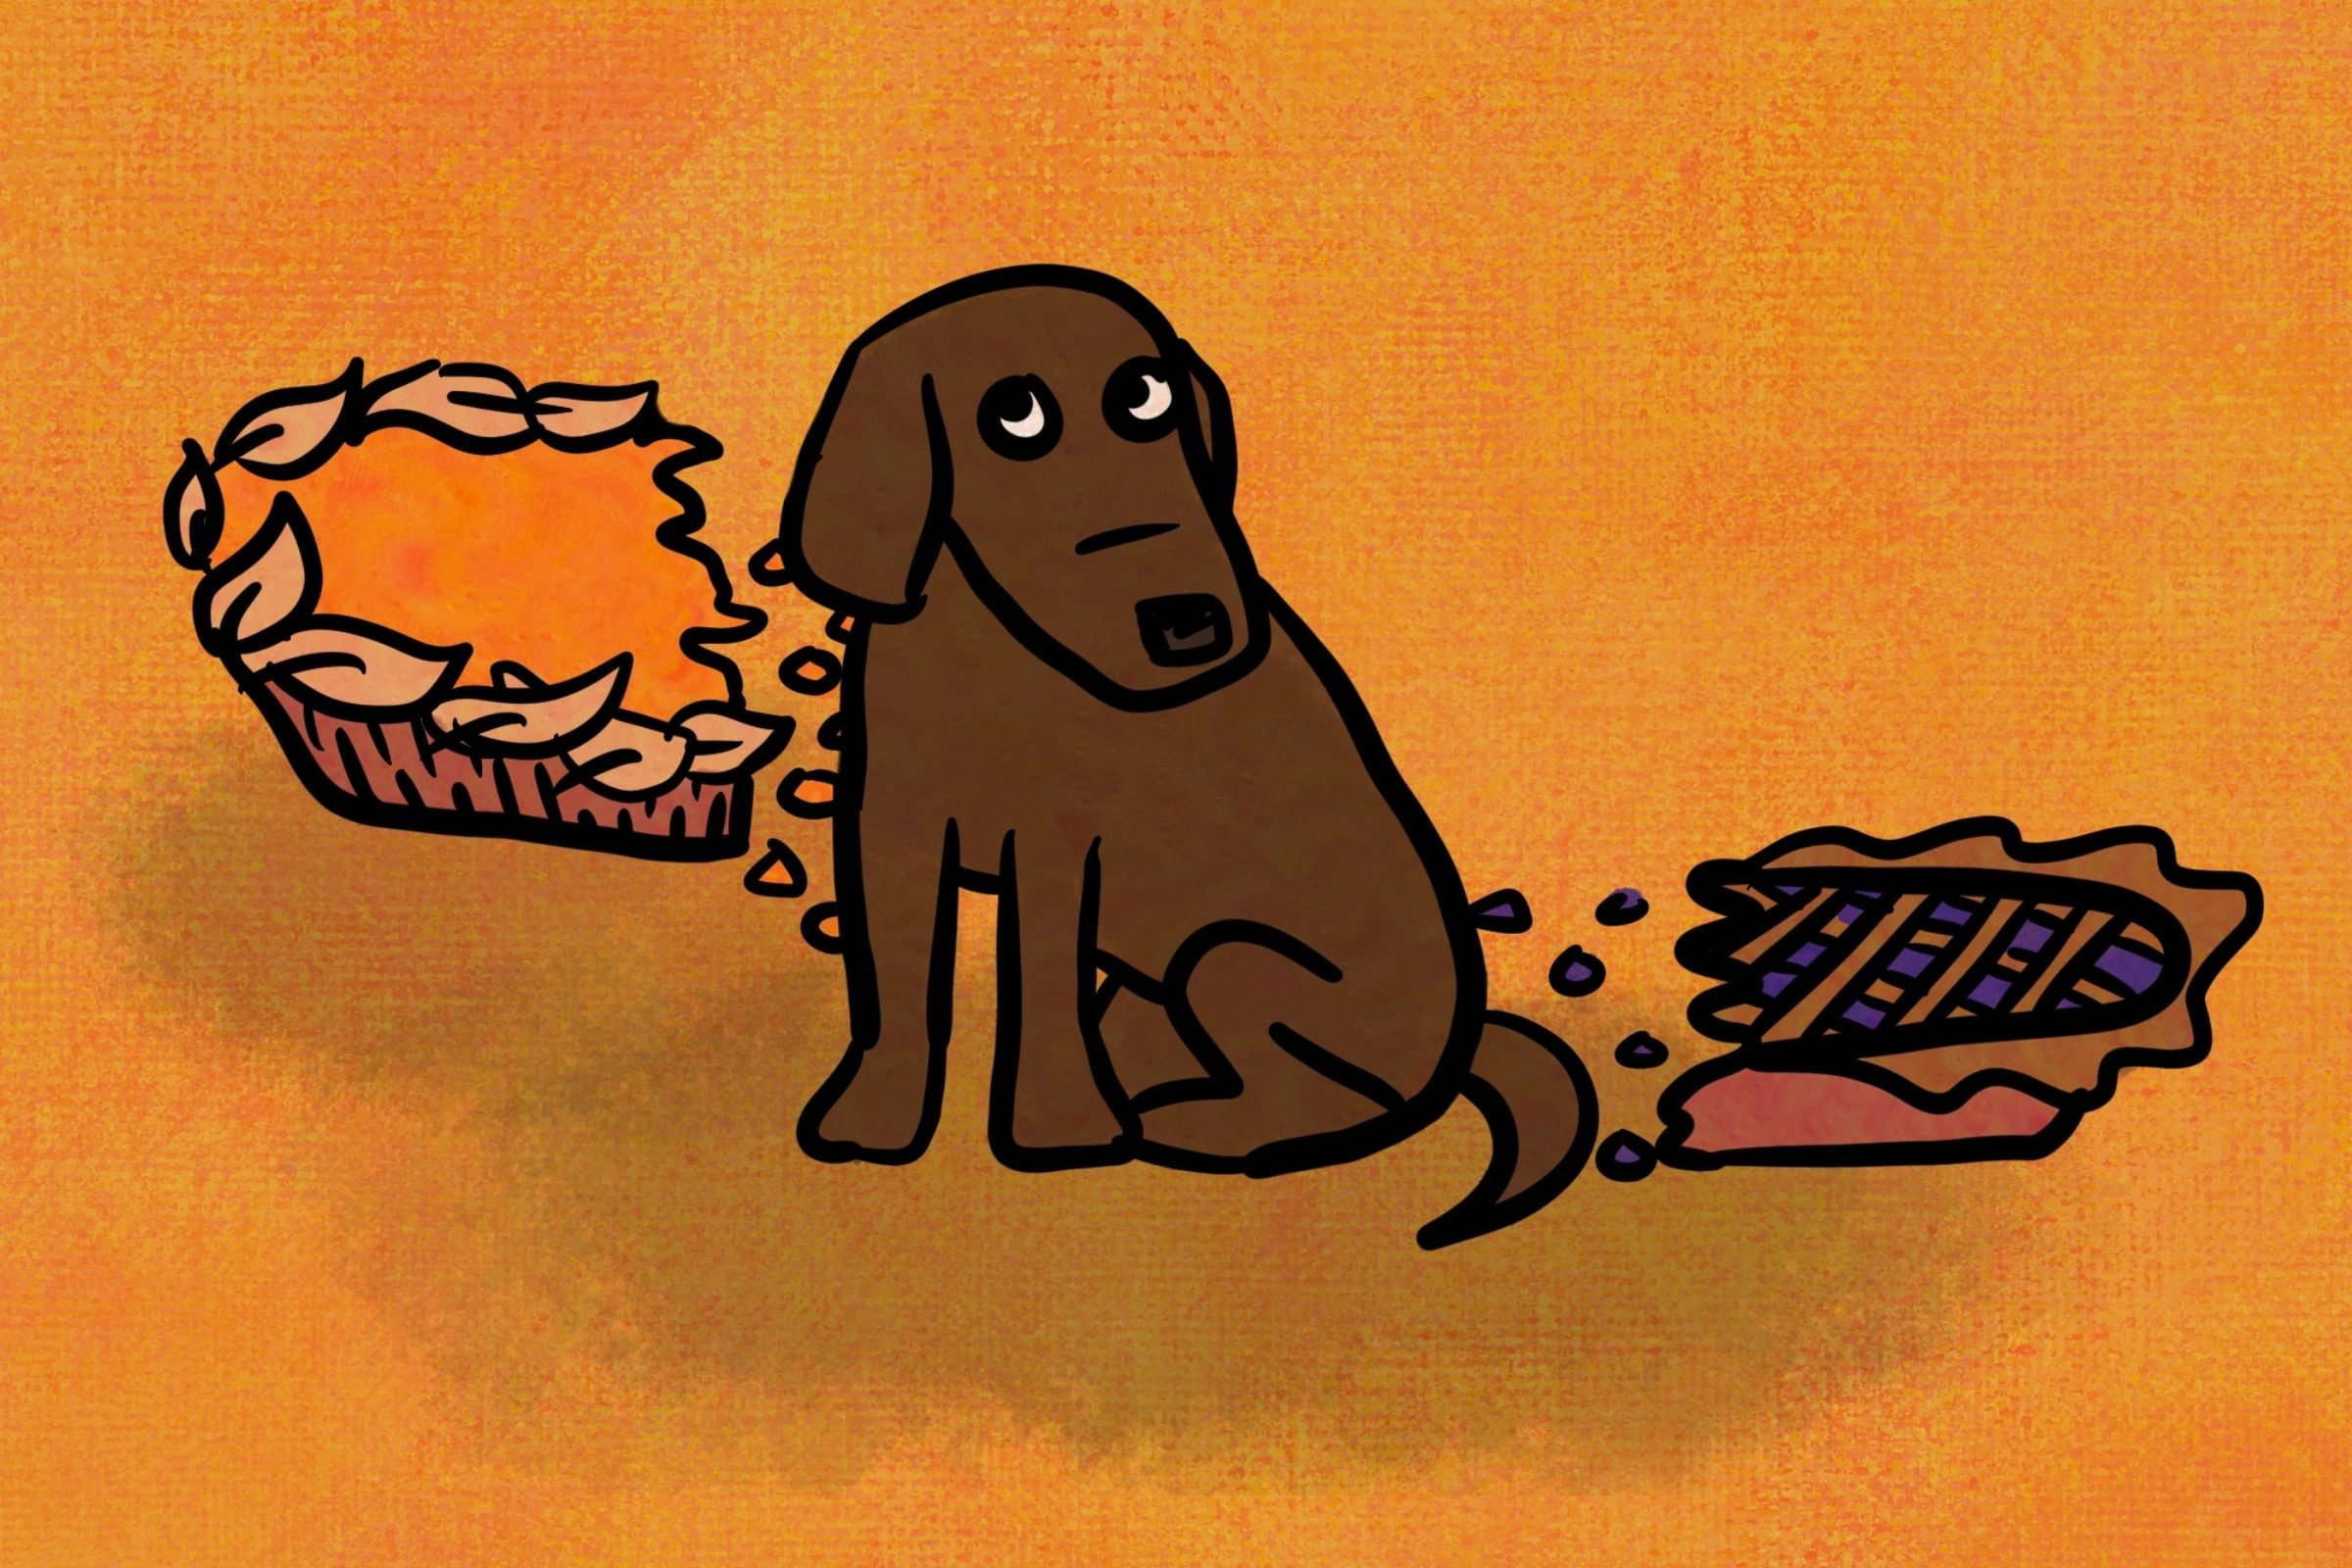 A dog and two half-eaten pies